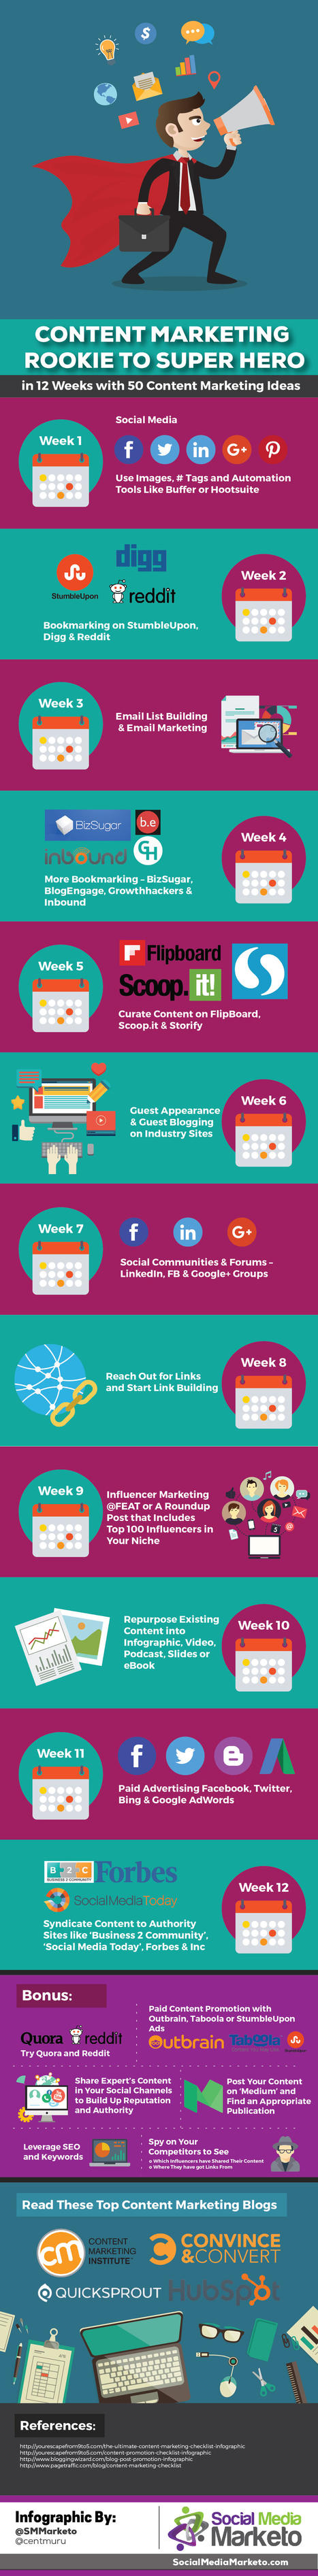 Internet Marketing for Beginners: 50 Ways to Generate Website Traffic [Infographic]   Top Tech News   Scoop.it